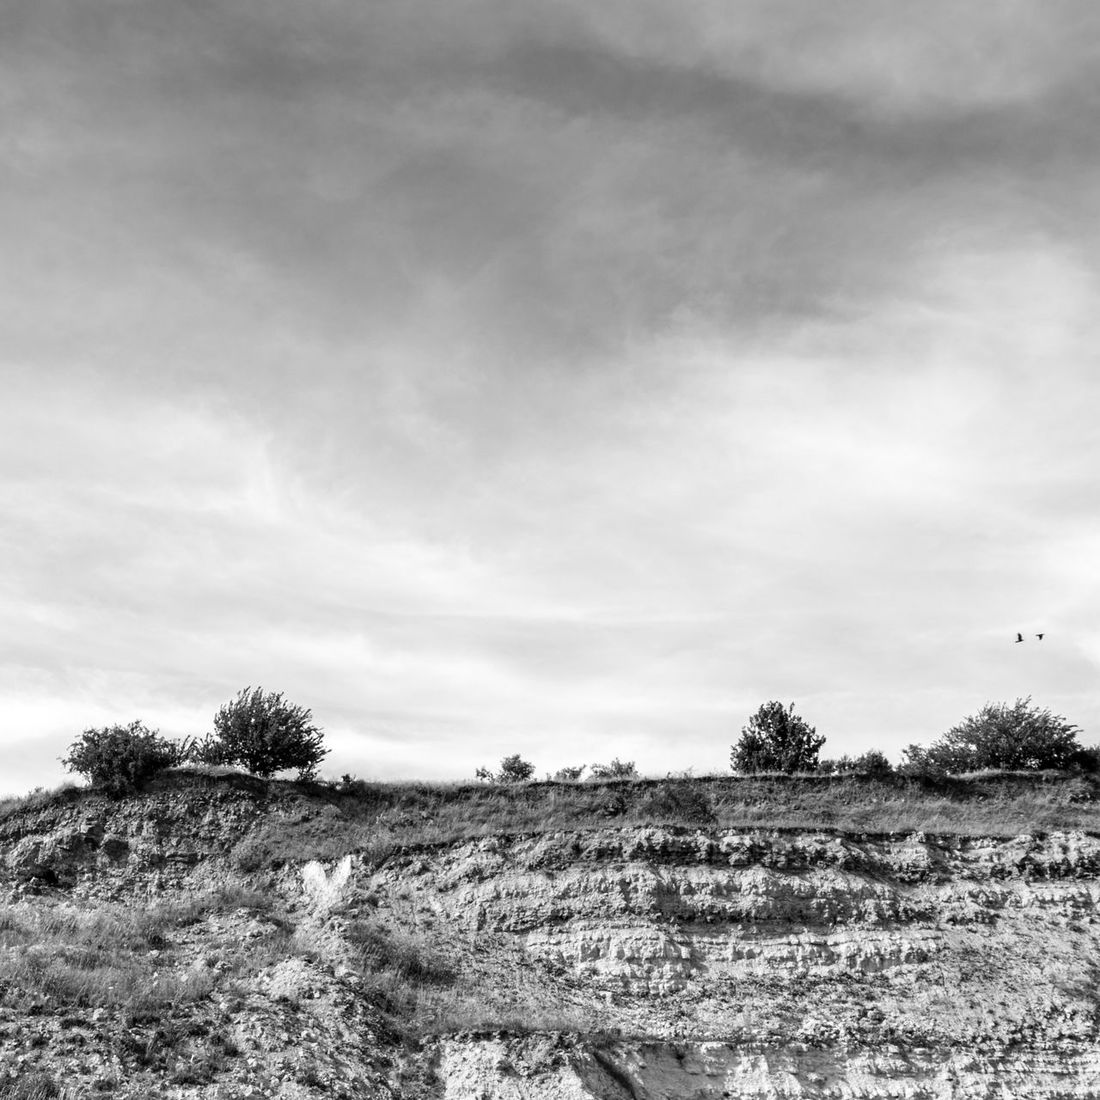 B&w Beauty In Nature Black And White Blackandwhite Clouds Day Geology Grass Growth Landscape Levels Of Rock Lookingup Multiple Layers Nature No People Outdoors Photography Scenic Scenics Sky Sky And Clouds Stone Pit Tranquility Tree Wall